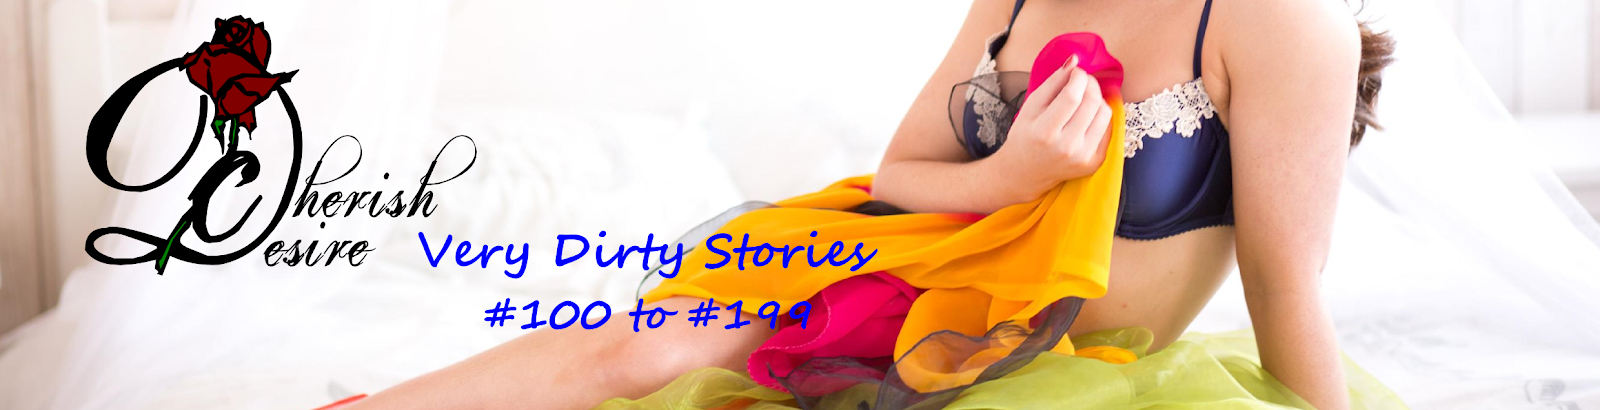 Very Dirty Stories #100 to #199, Max D, erotica